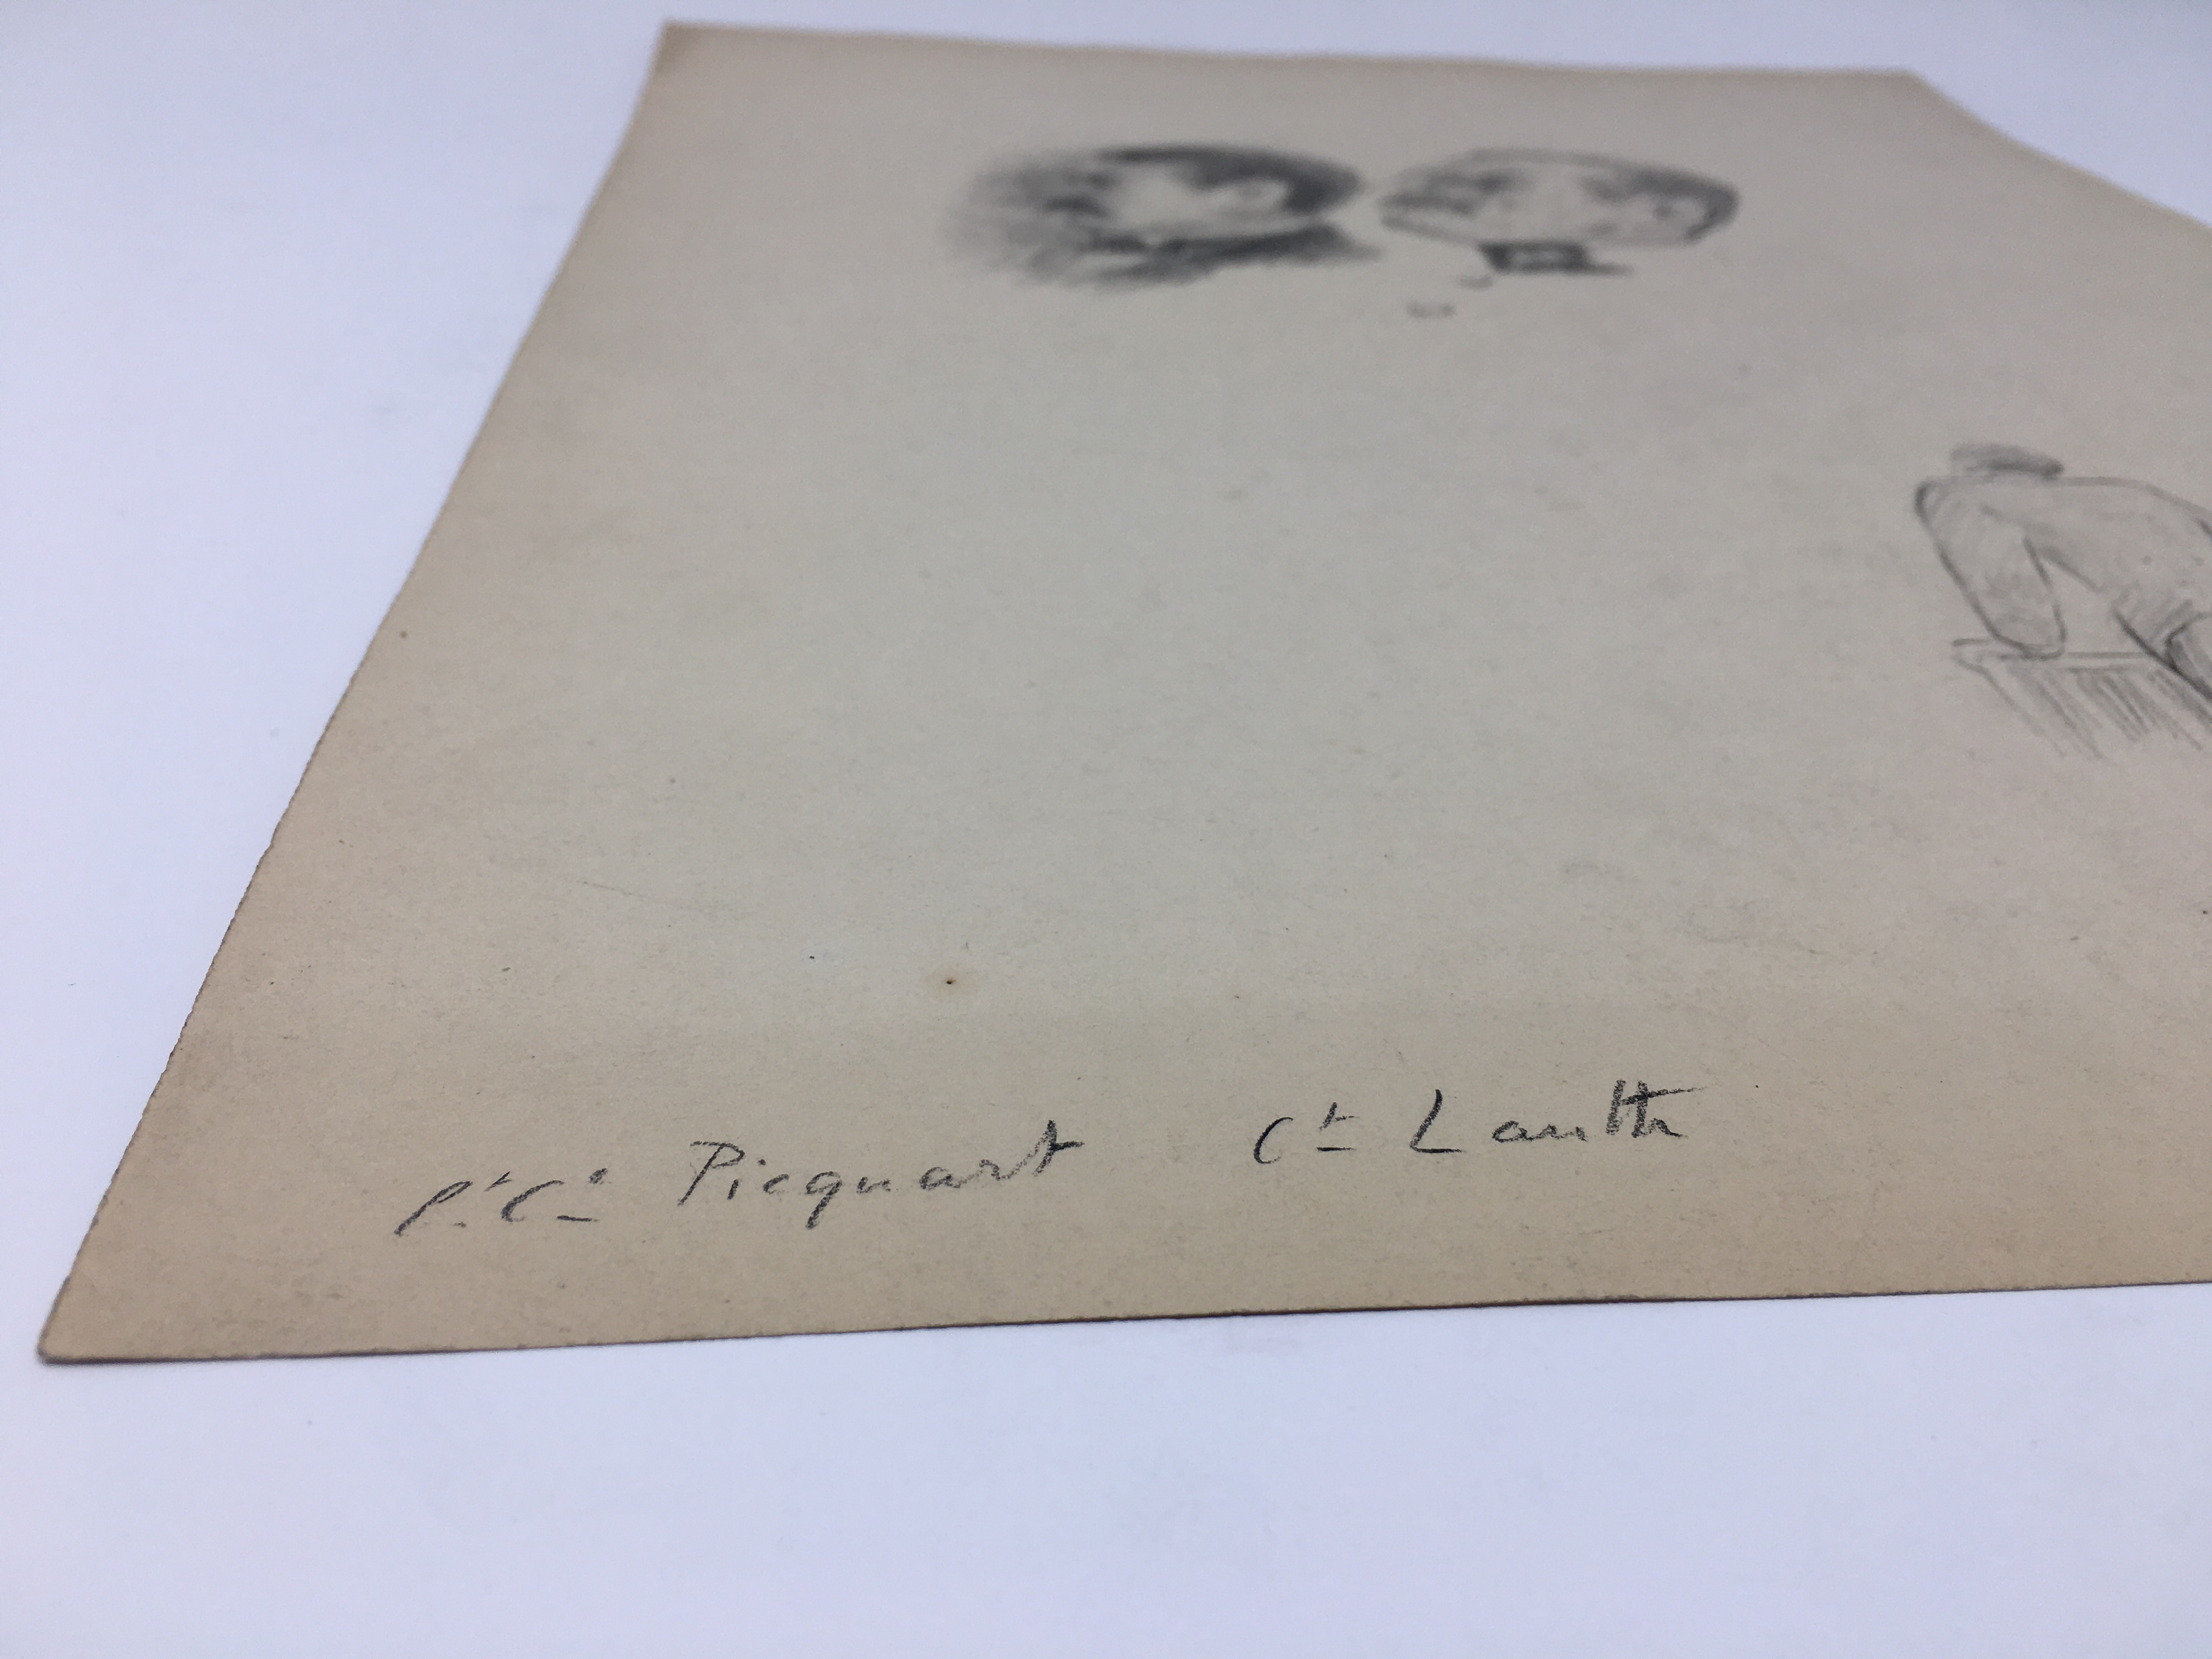 J'Accuse Newspaper, Emile Zola Quote, Signed Dreyfus Portrait, Rare Trial Drawings & Schwartzkoppen - Image 51 of 74